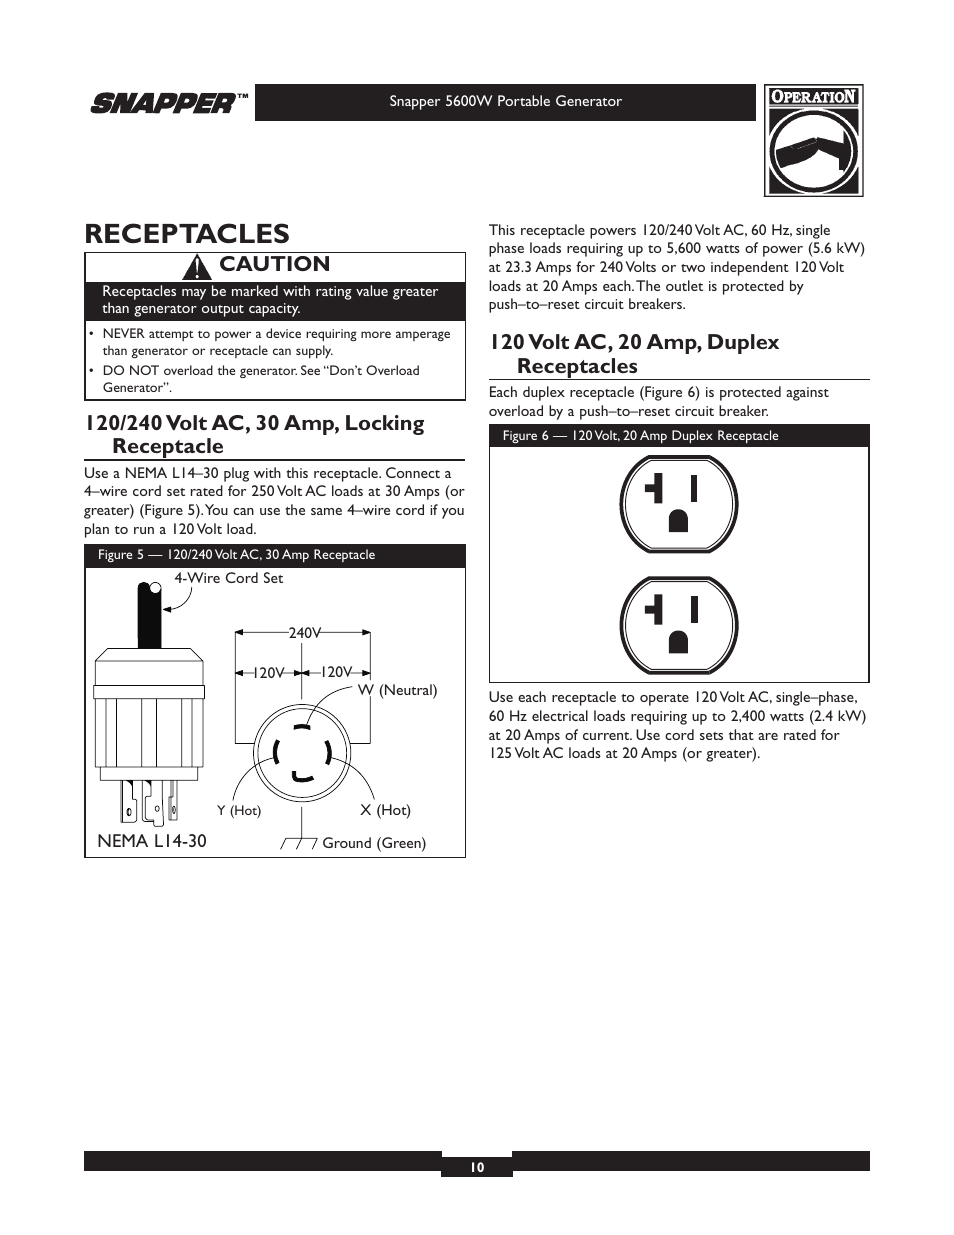 medium resolution of  diagram on led floodlight wiring receptacles caution snapper 5600 user manual page 10 28 on led floodlight how to wire 240 volt